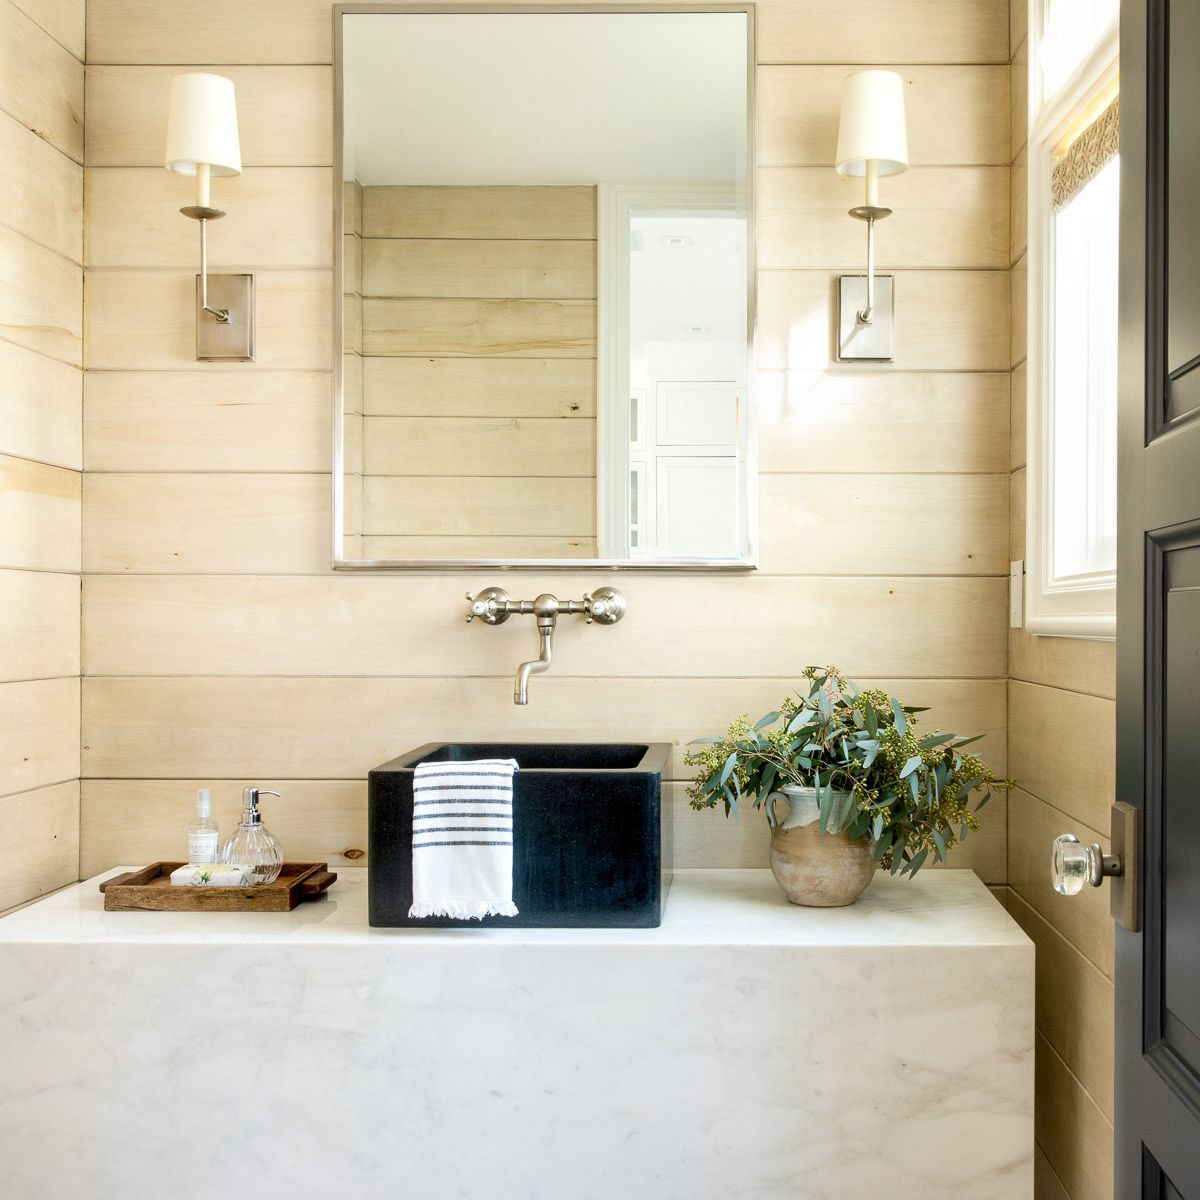 A bathroom with wood paneling lining the walls